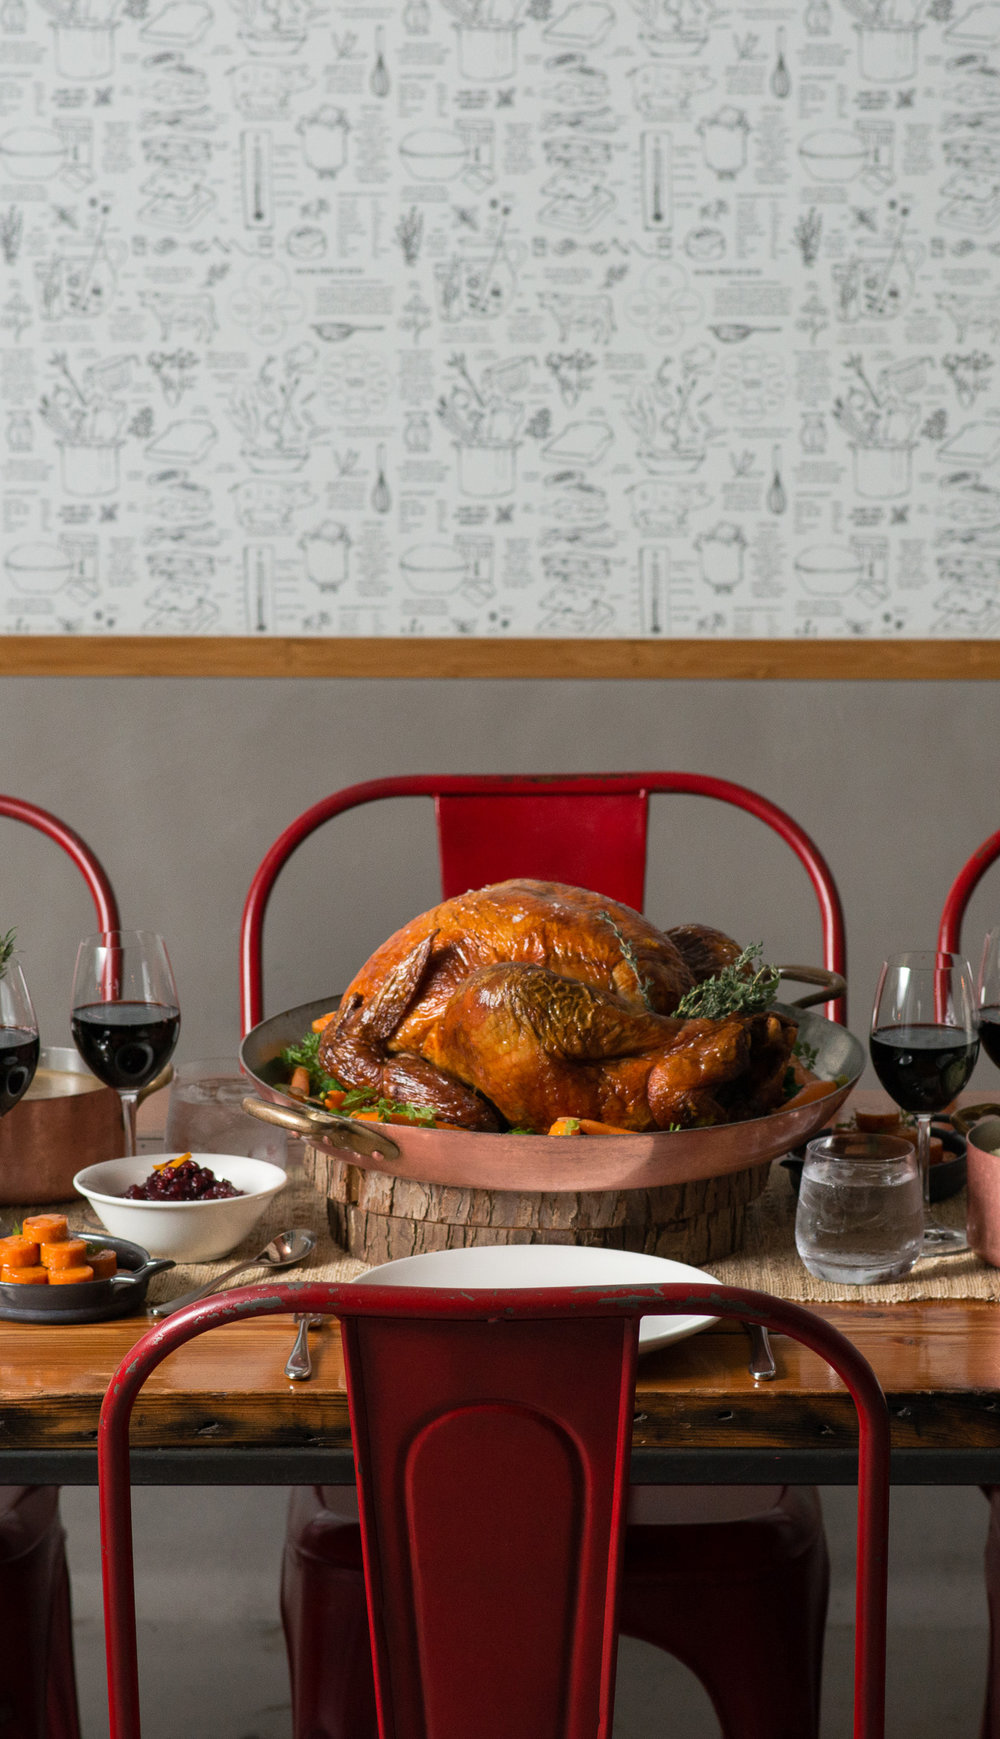 RAILTOWN CATERING BRINGS BACK SIGNATURE TURKEY TO-GO PACKAGES - November 14, 2018Railtown Catering is simplifying the busy holiday season once again this year by bringing back their hassle-free Holiday Turkey To-Go packages, available for pickup or delivery on December 24, 25 and 26.Prepared from scratch by Railtown Catering's award-winning team of classically trained chefs, each traditional holiday dinner serves eight to 10 guests and features a pre-carved 16-lb. sage-roasted turkey with all the trimmings – including giblet gravy, dried apricot, chestnut & brioche stuffing, Brussels sprouts with toasted almonds, mashed Yukon gold potatoes with chives – and pecan pie with Chantilly cream for dessert. Larger groups can supplement their ready-made festive feast with extra side dishes, sauces and desserts on an à-la-carte basis.Railtown Catering will be giving back this holiday season and donating a portion of the proceeds from the sale of each Holiday Turkey To-Go package to Mission Possible, a non-profit neighbourhood organization that provides street-level care for those with immediate and critical needs in Vancouver's Downtown Eastside.